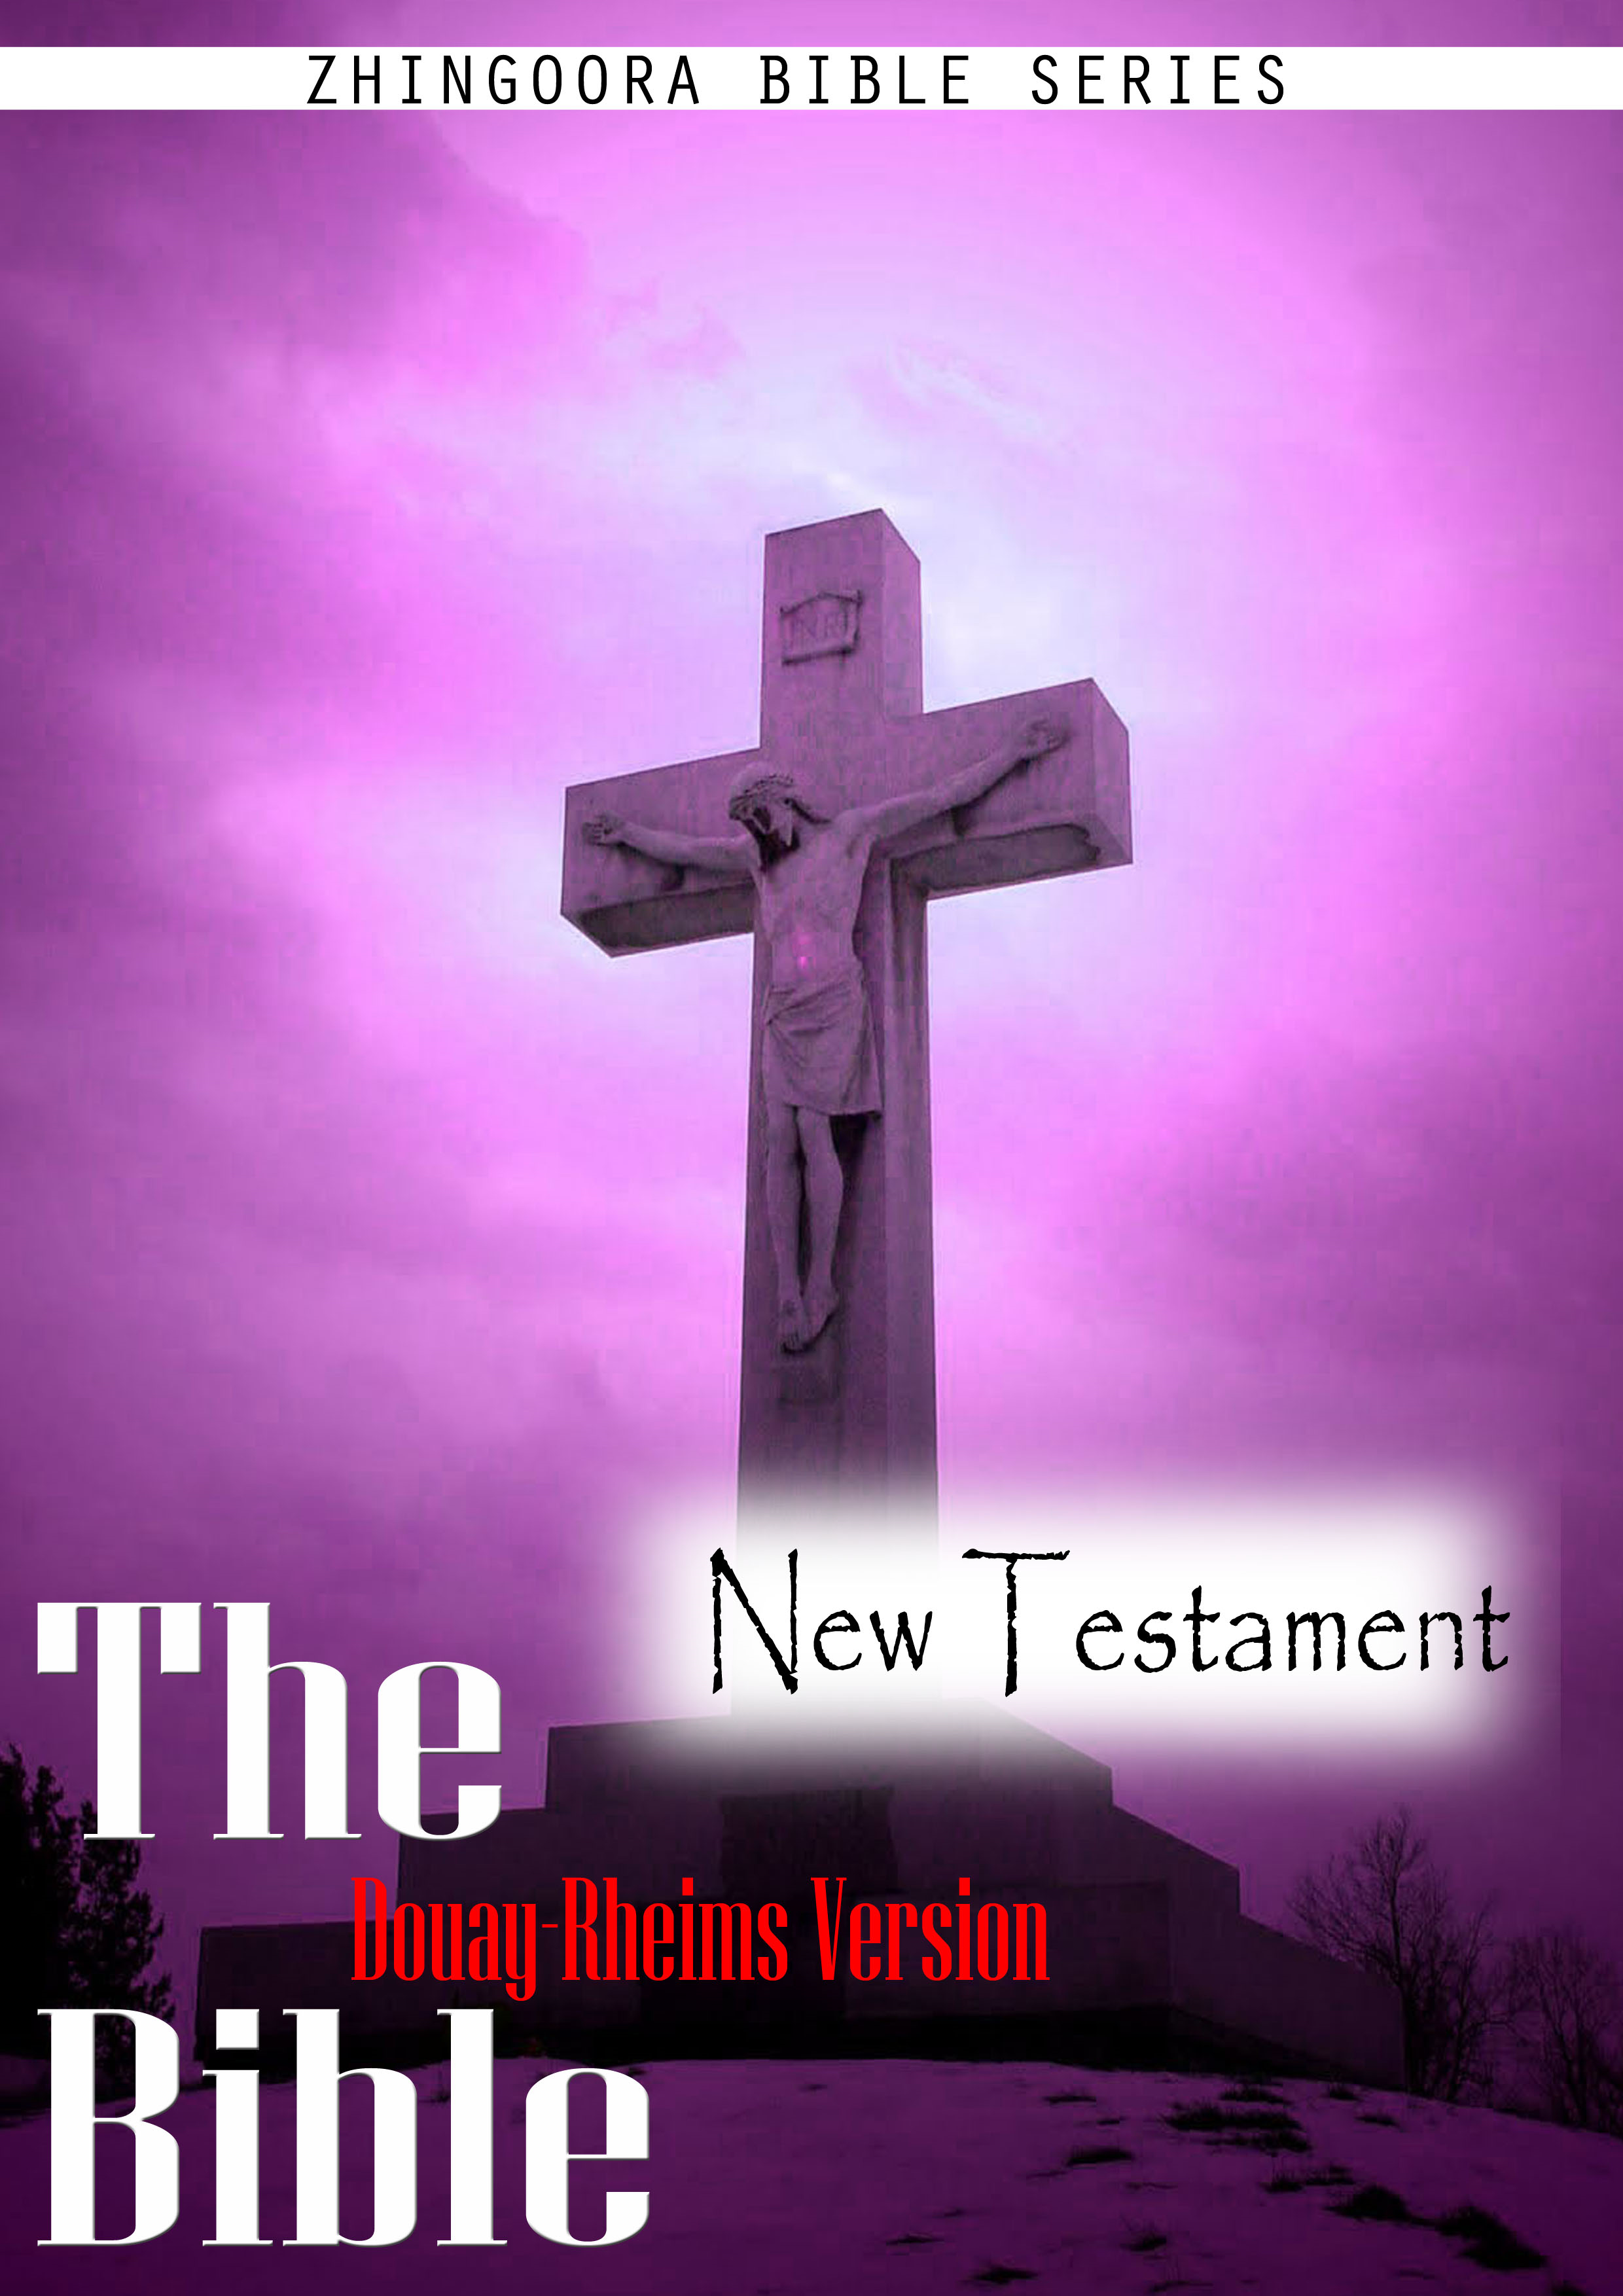 Holy Bible, Douay-Rheims, New Testament By: Zhingoora Bible Series